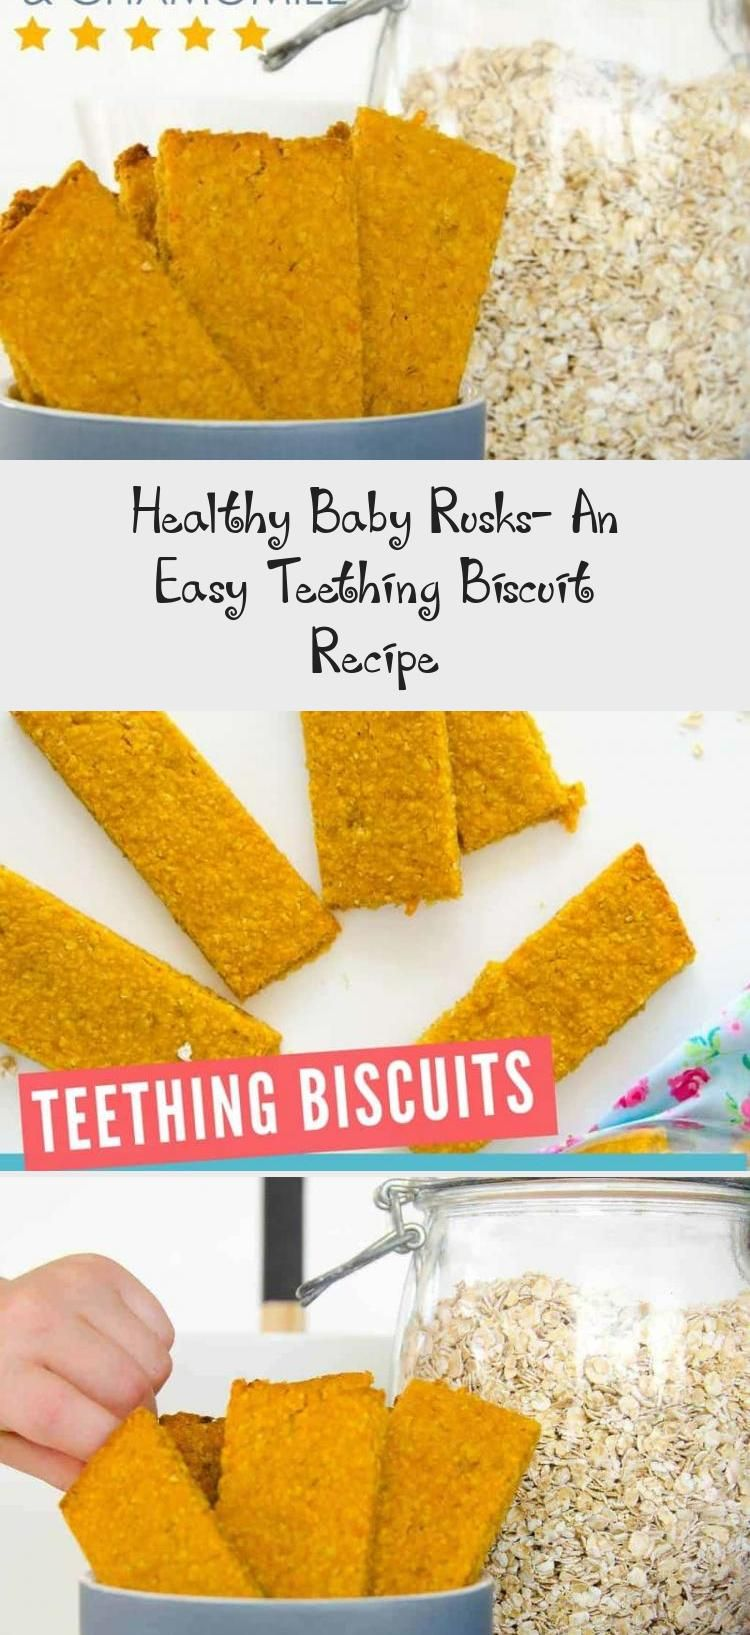 Healthy Baby Rusks An Easy Teething Biscuit Recipe Biscuit Recipe Homemade Baby Foods Teething Biscuits